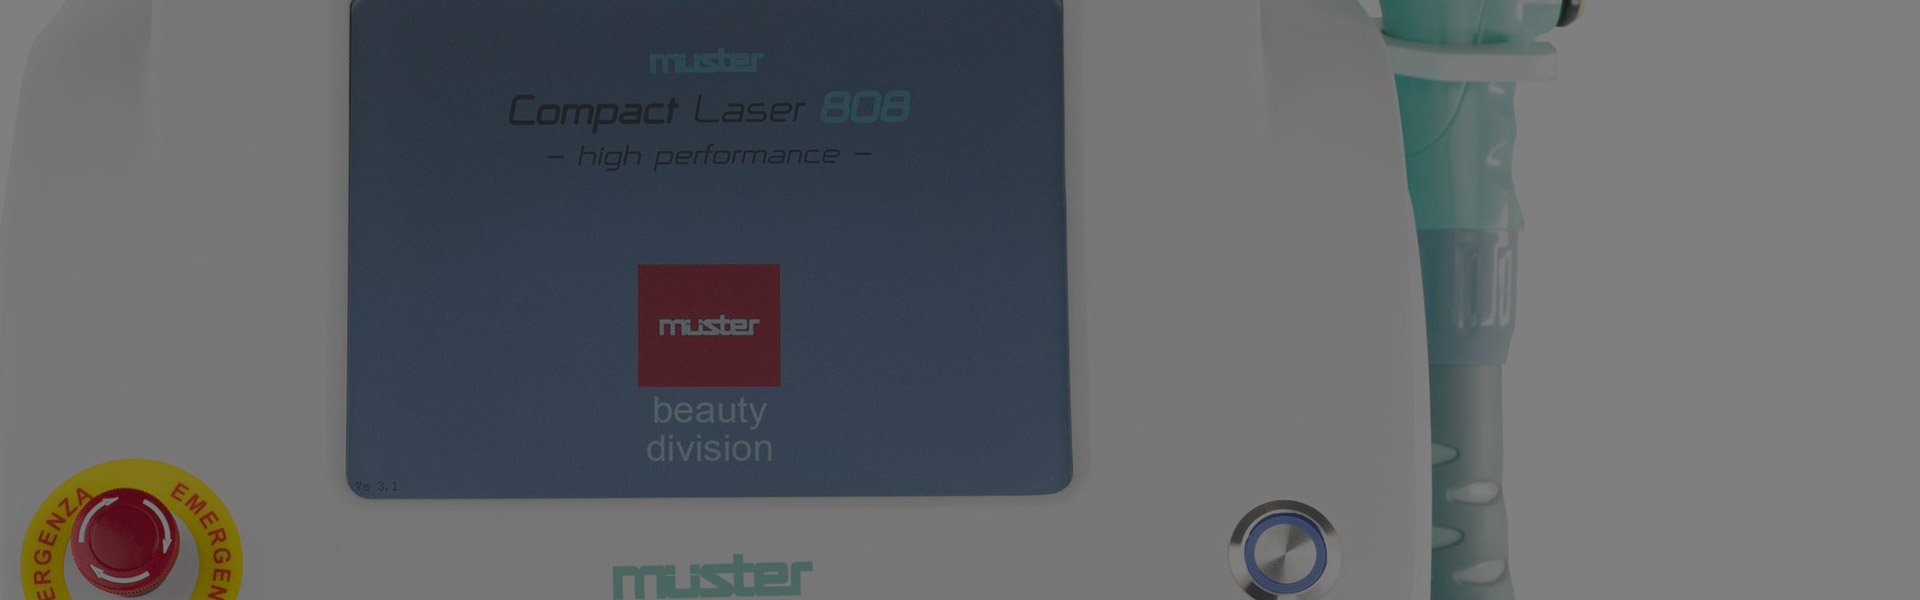 Compact Laser 808 - Professional laser equipment for permanent